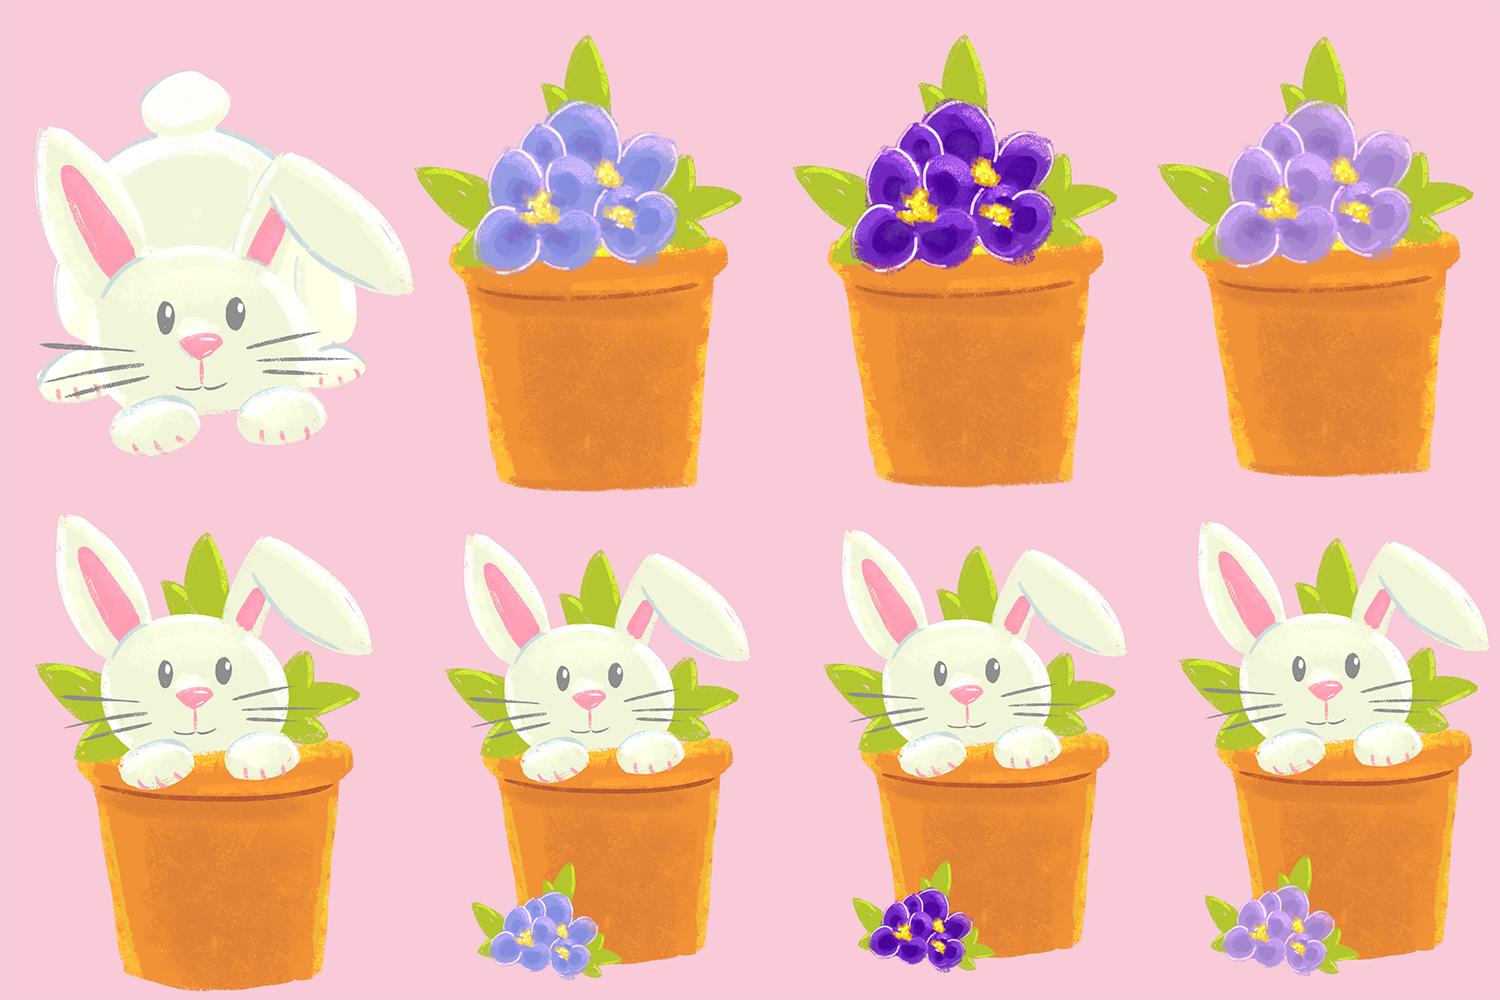 Spring Flower Bunnies Illustration Collection example image 3